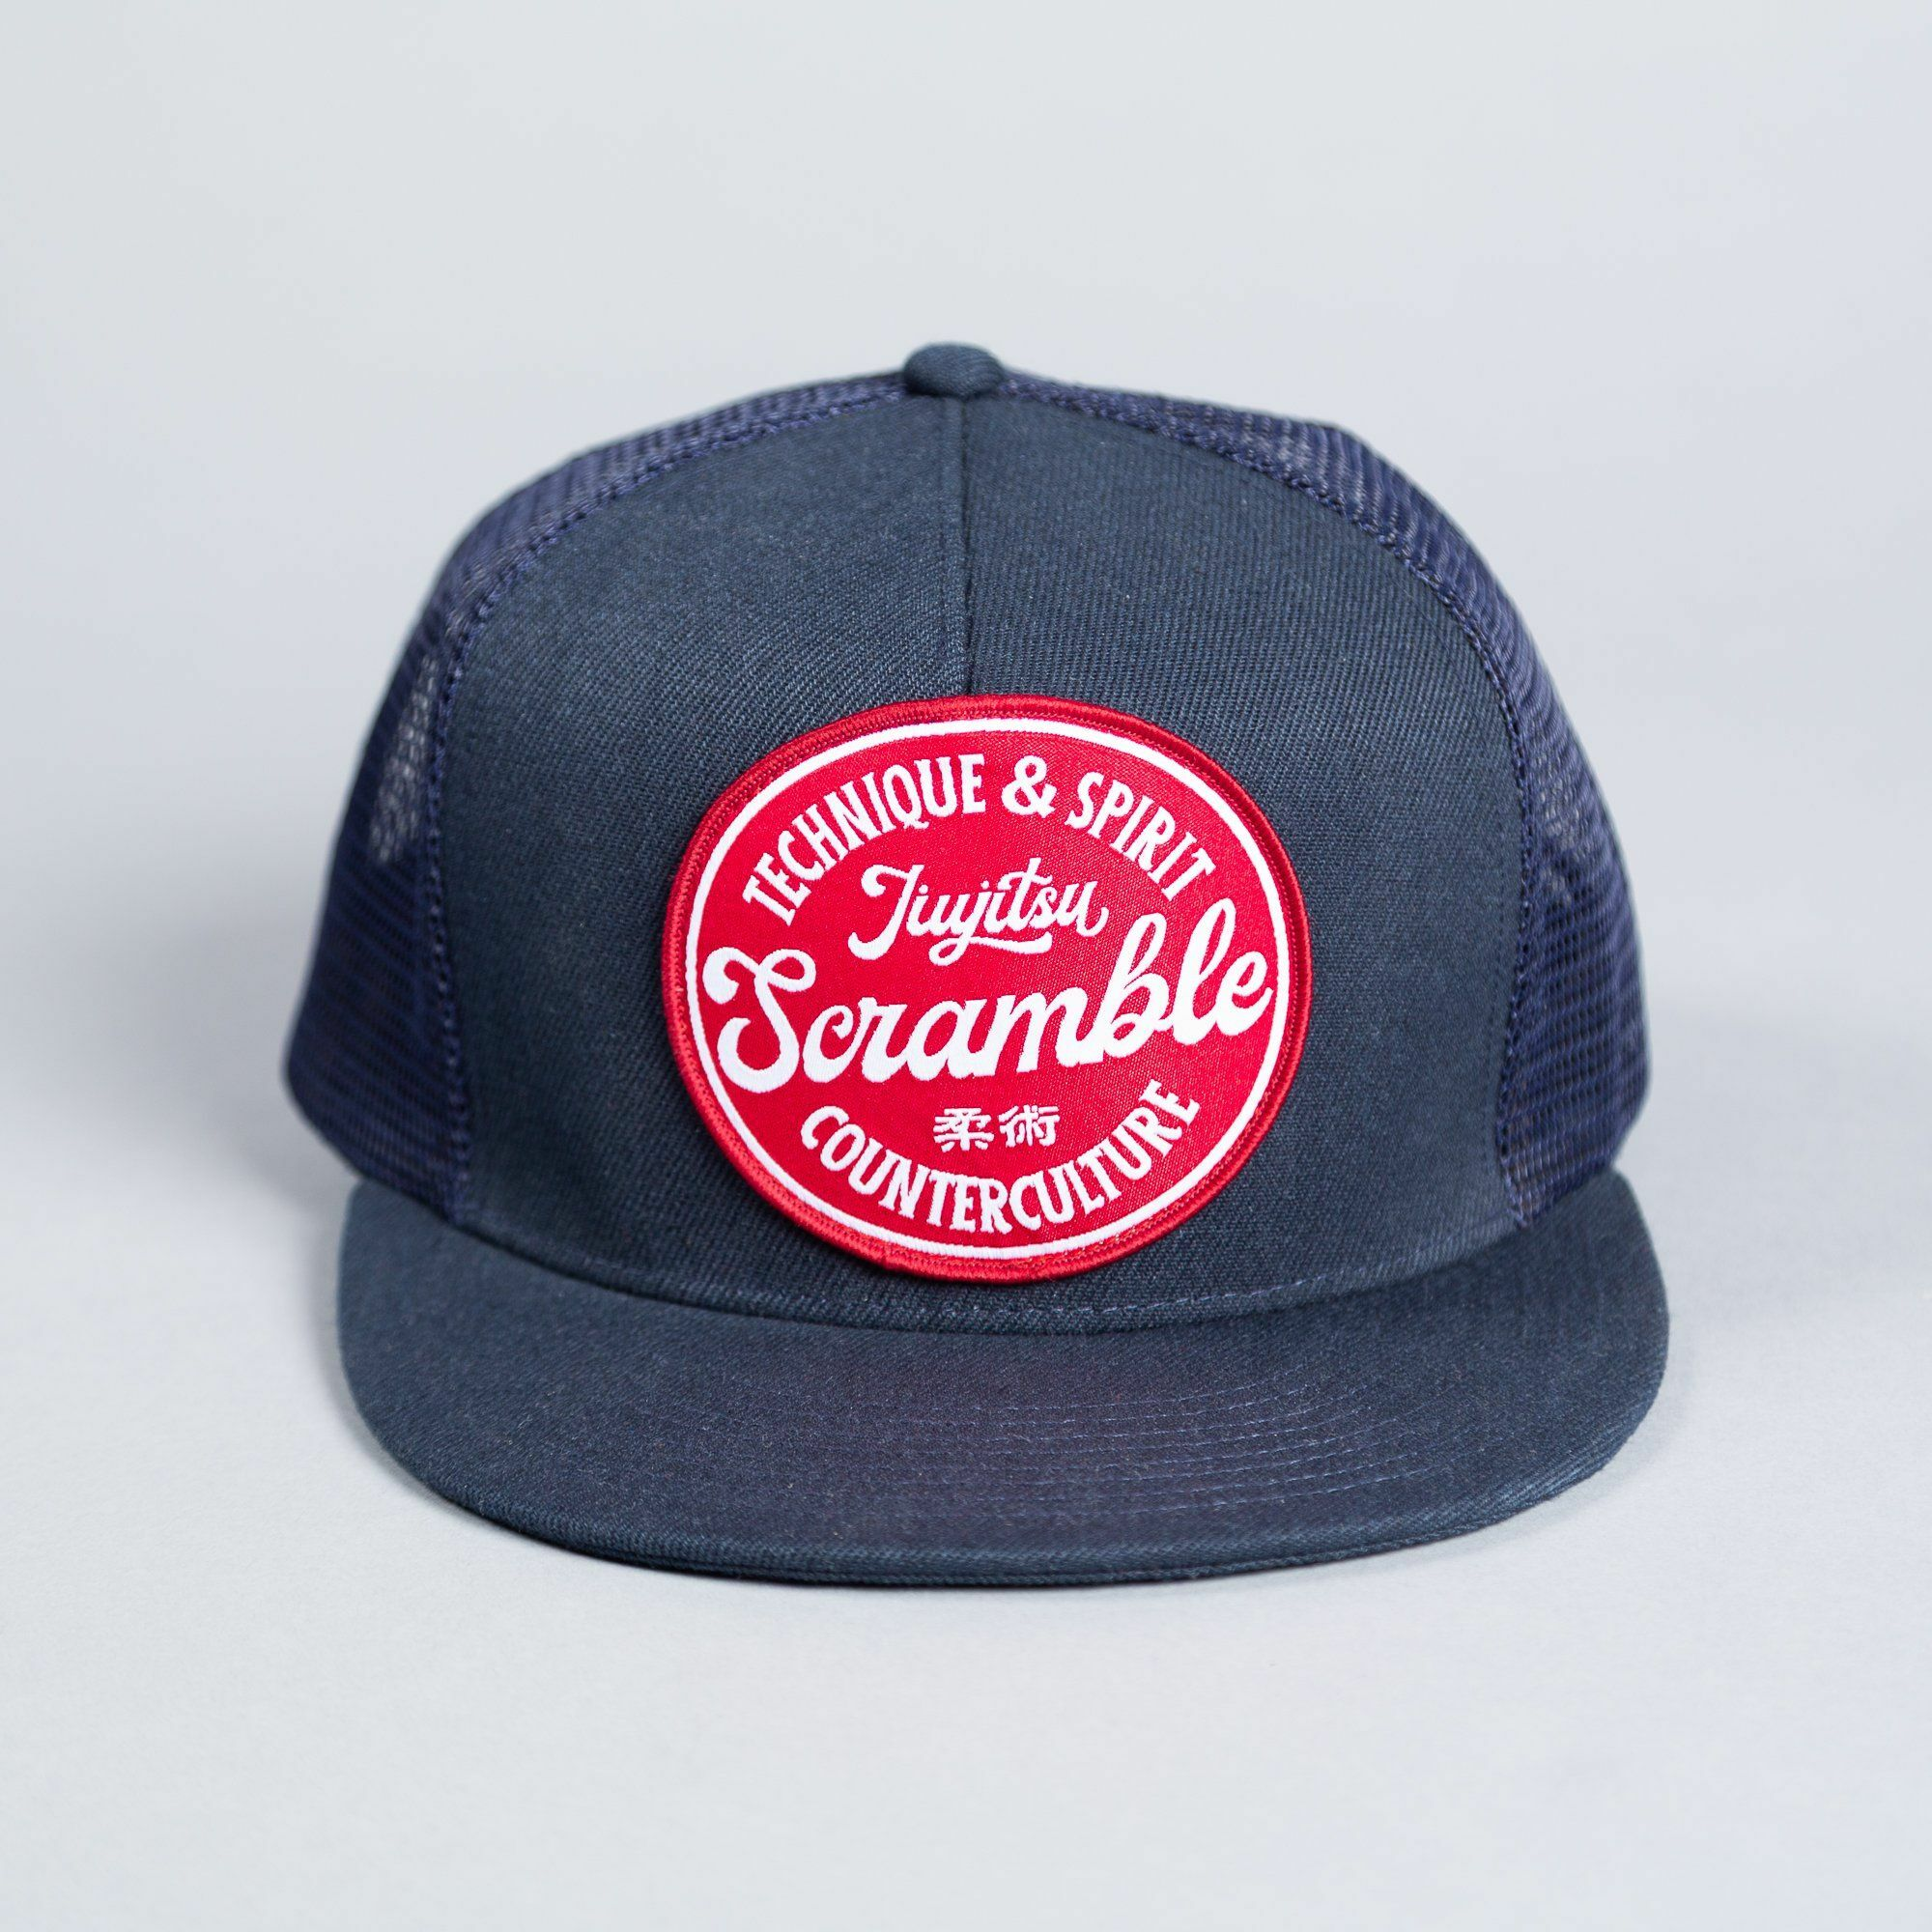 SCRAMBLE TECHNIQUE & SPIRIT TRUCKER HAT – ネイヴィー|帽子